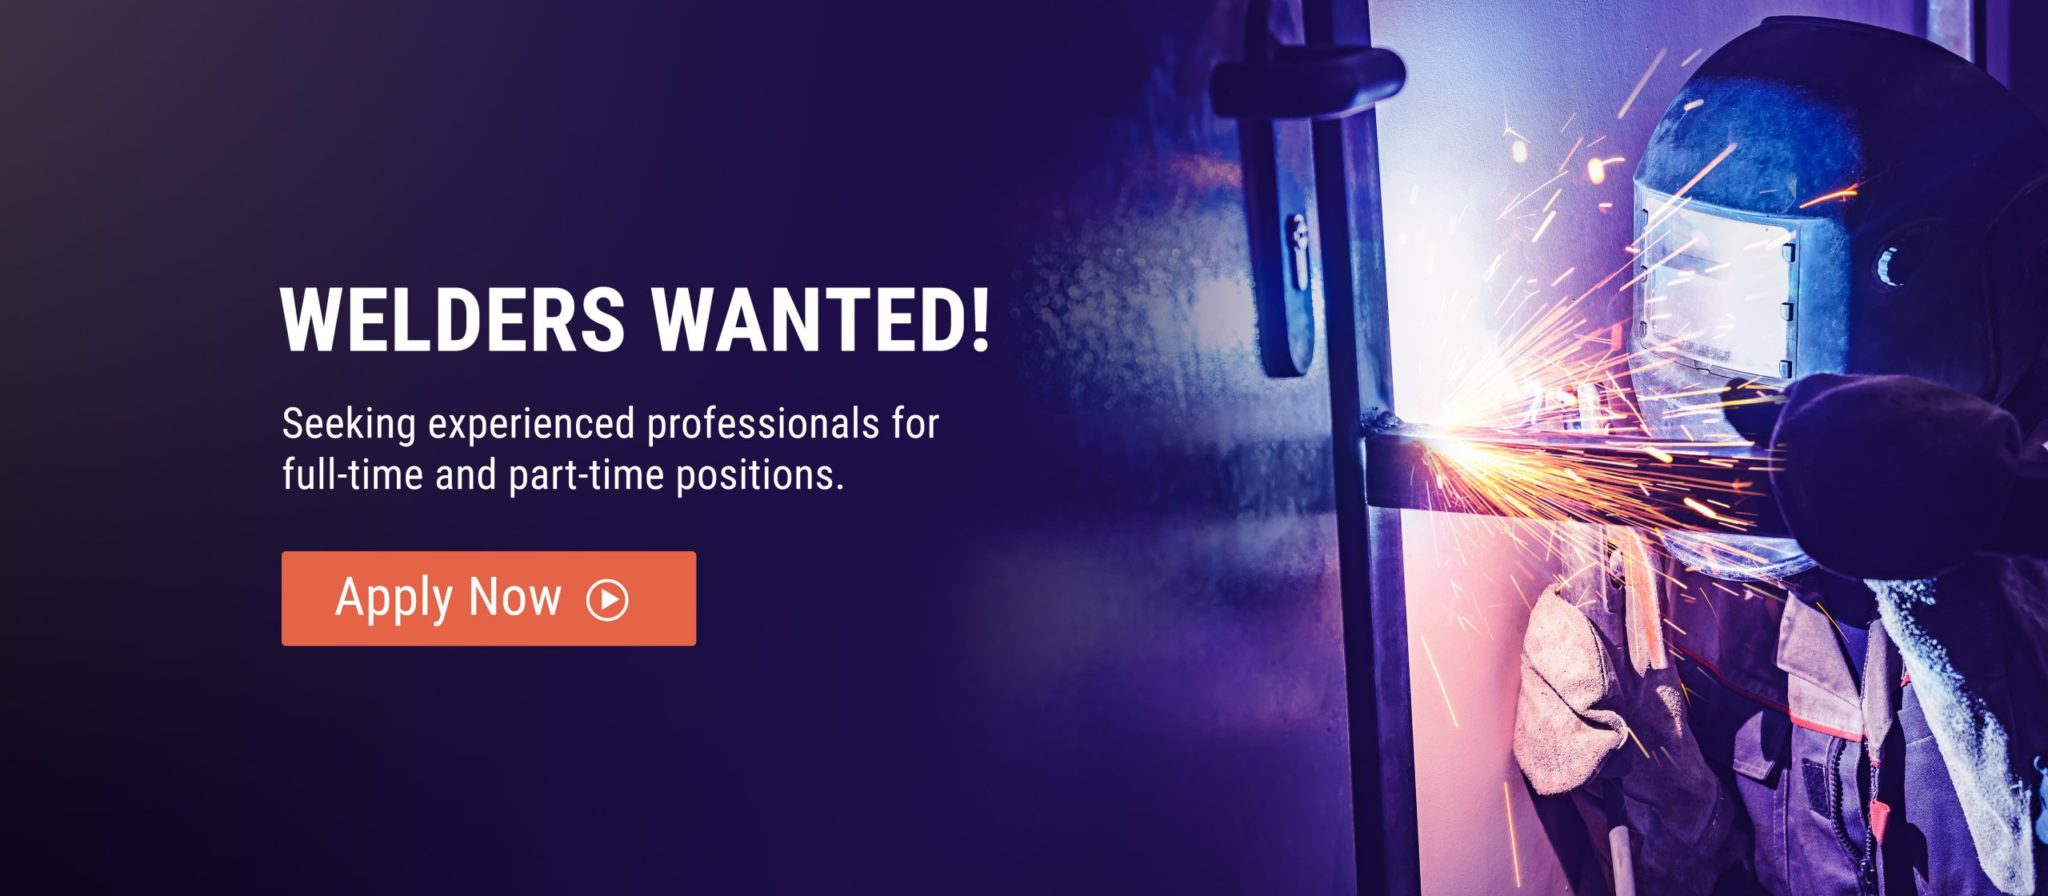 image of welder sparking with text advertising job openings